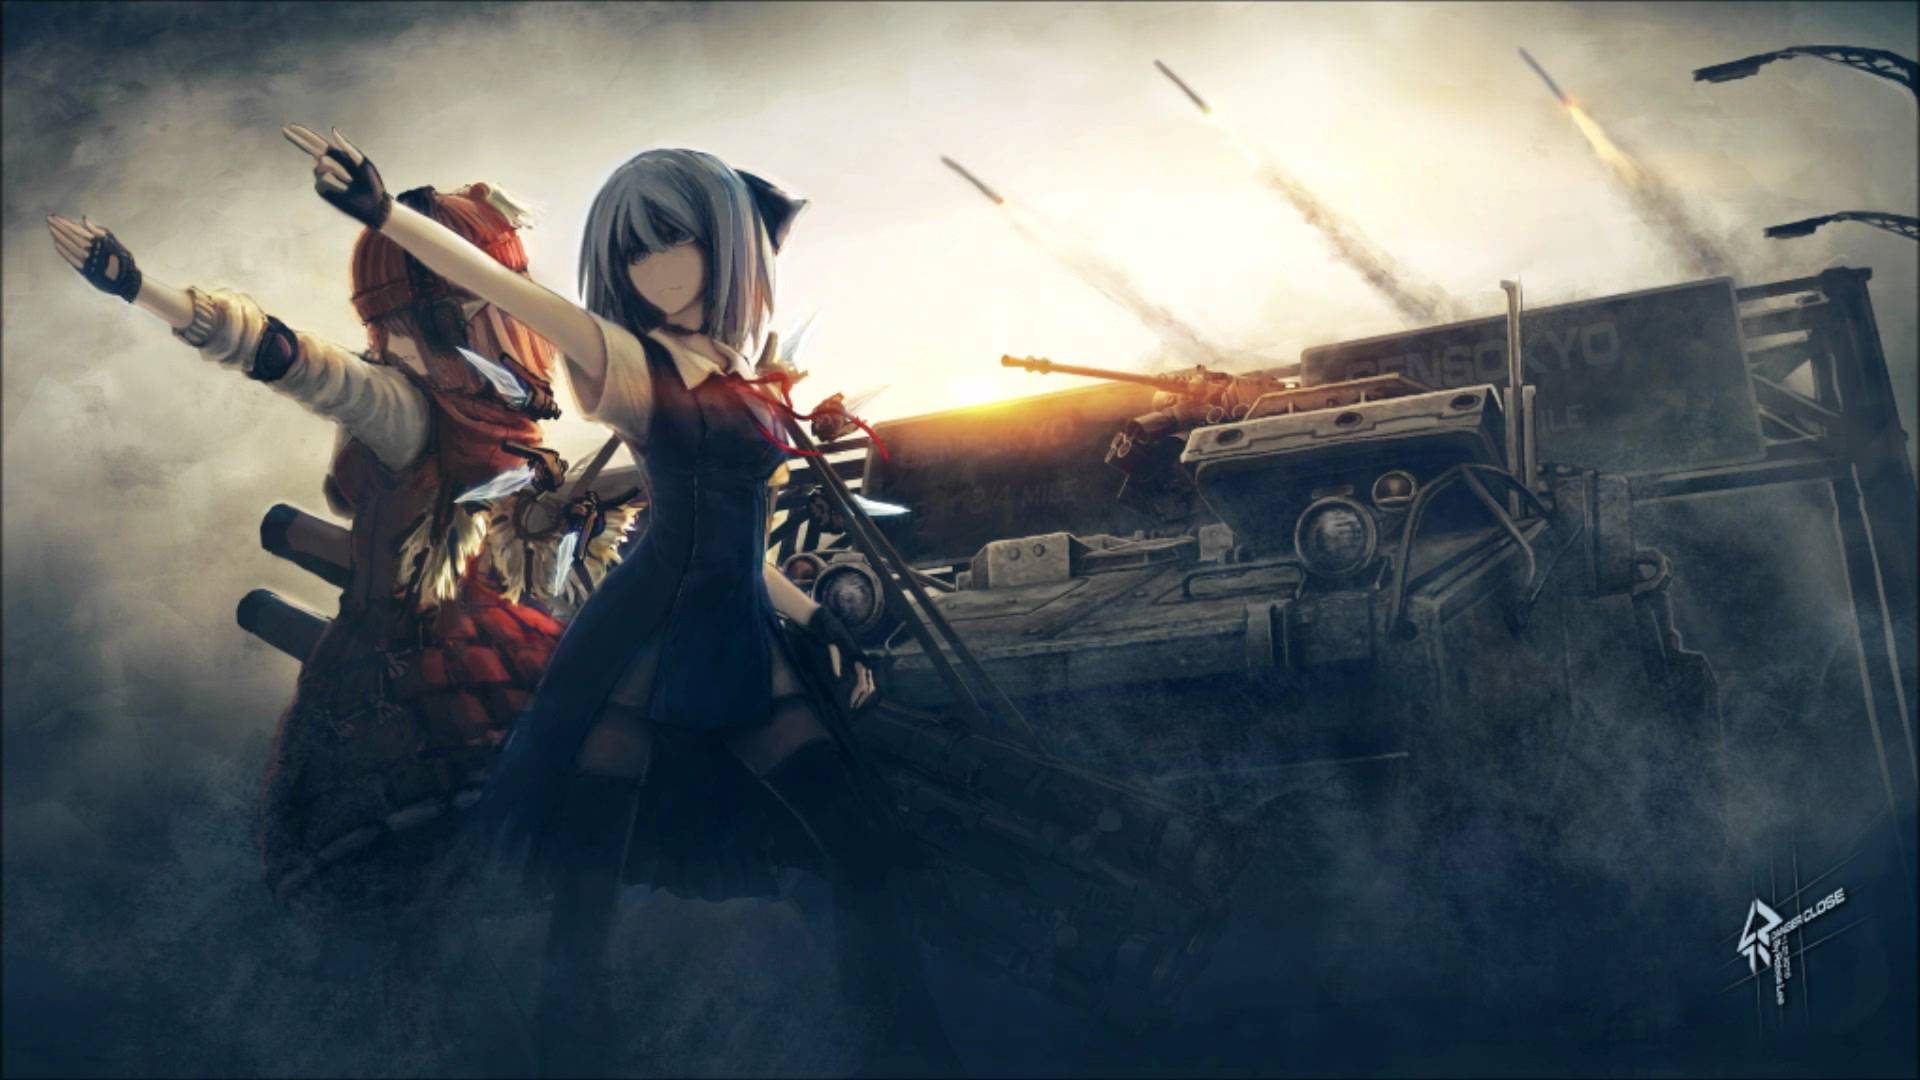 Anime War Wallpapers - Top Free Anime War Backgrounds